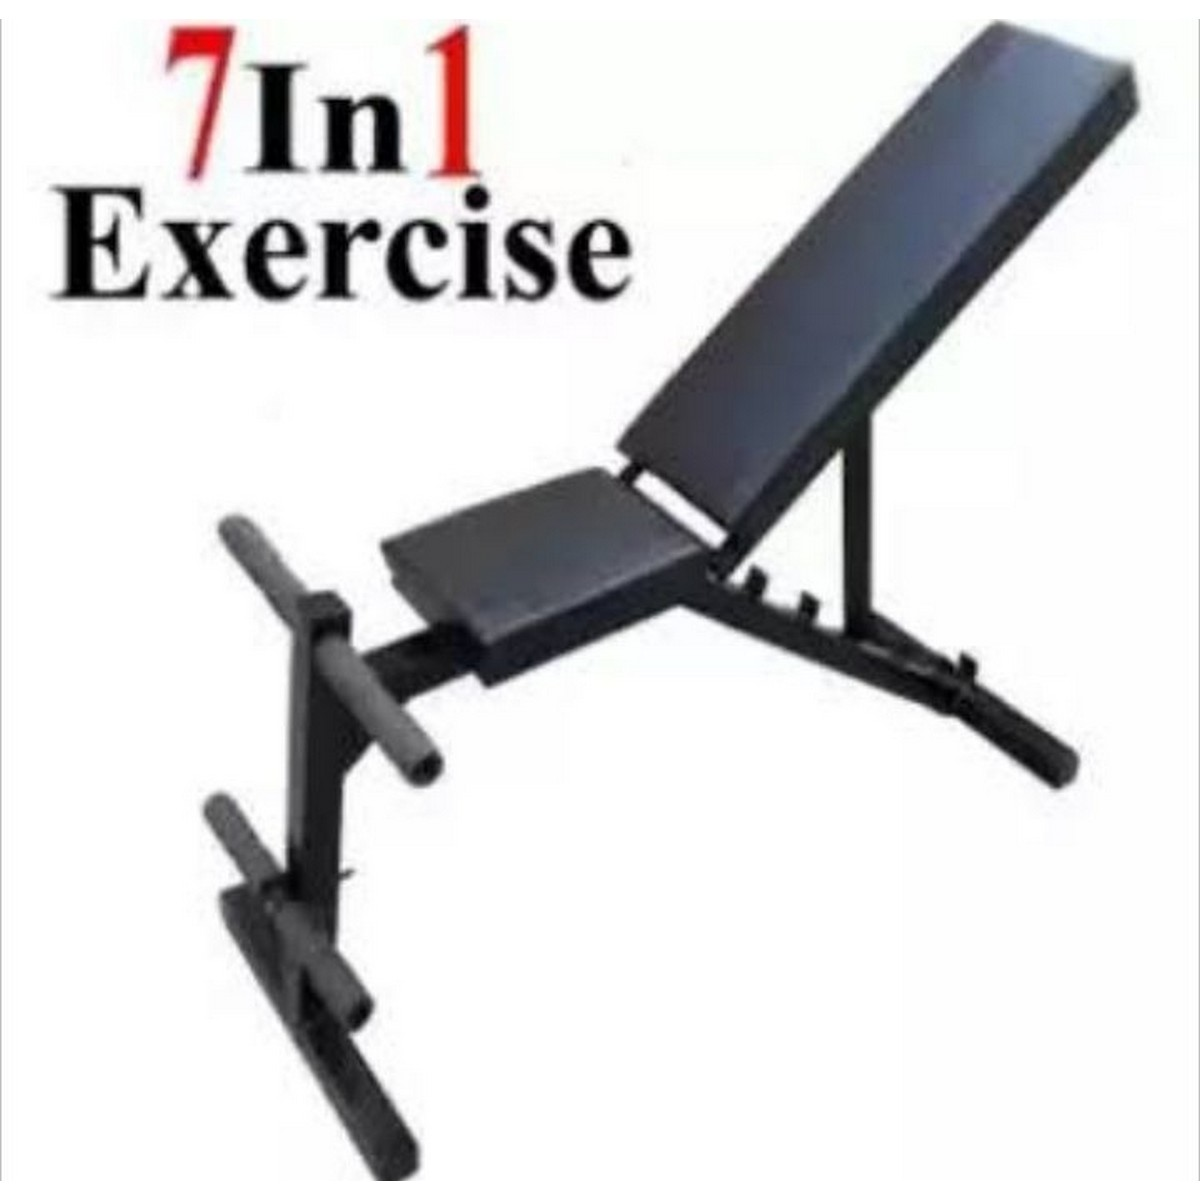 BEST Quality 90 Degree Multi Exercise Adjustable Chest Bench Press Incline Decline Straight Flat Thigh Leg Shoulder Bench Press Chest Belly Exercise Bench Press Weight Lifting Bench Press Body Building Bench Press Dumbbells Chest Workout (AMBALA FITNESS